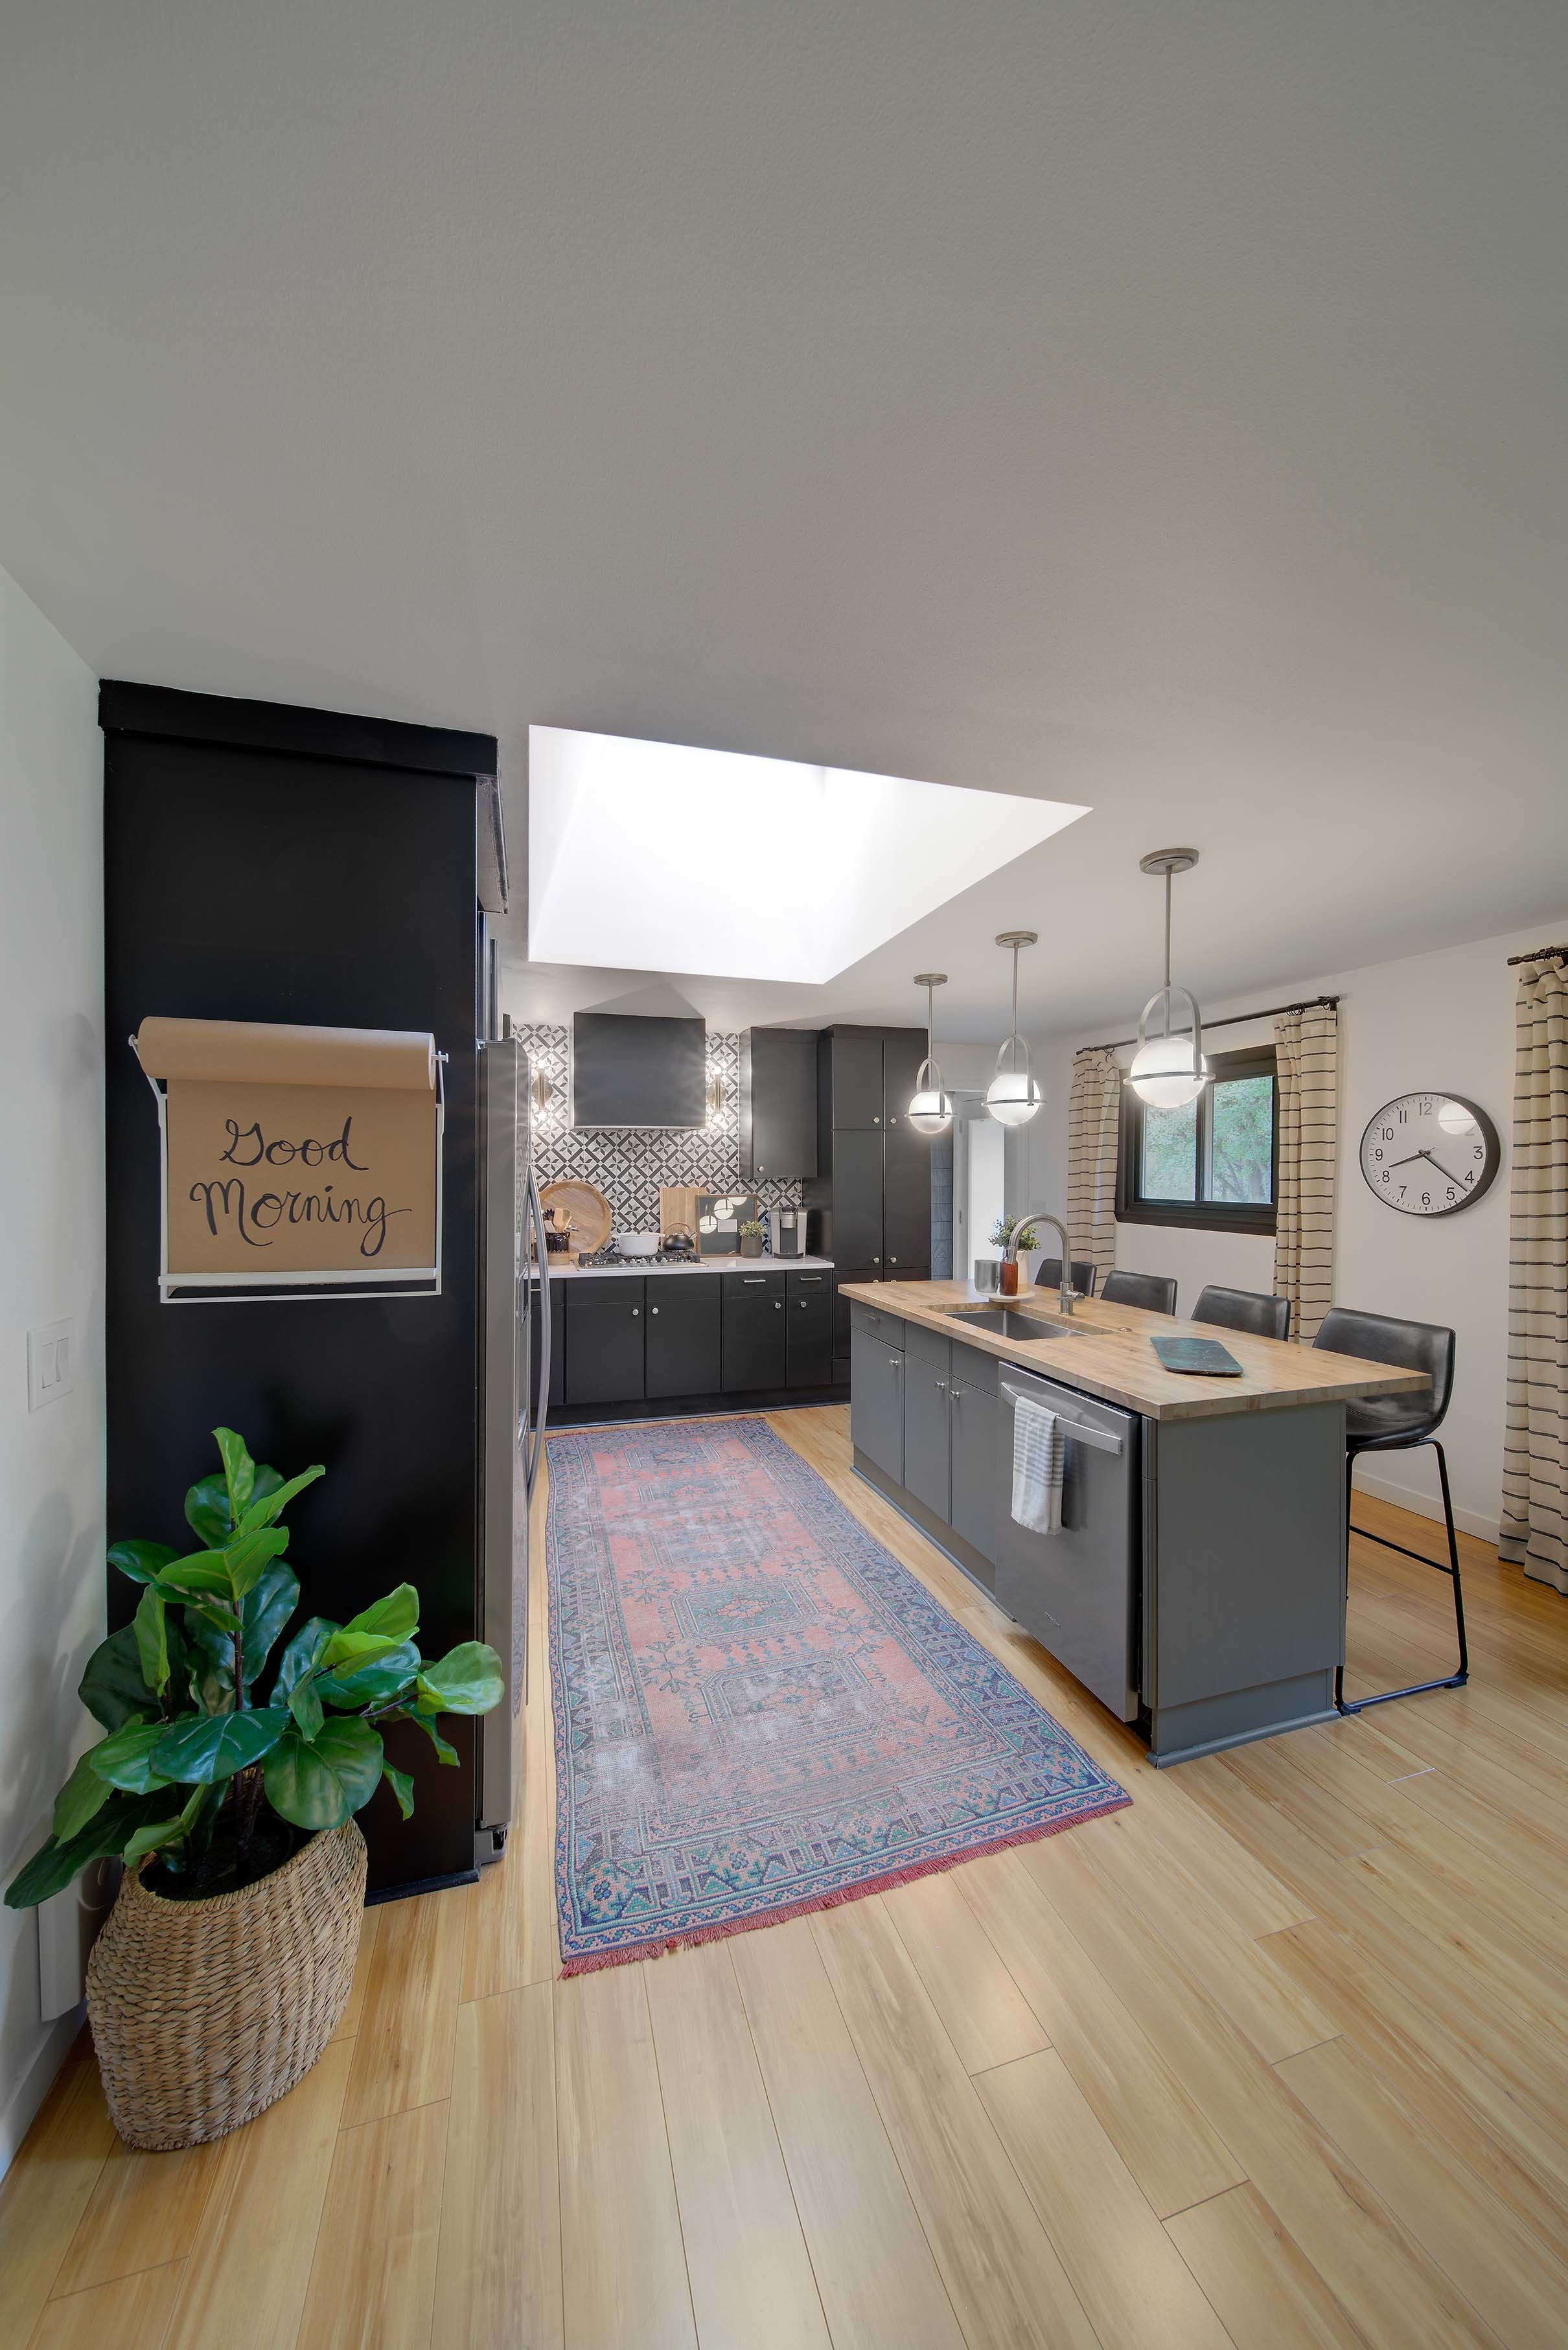 Skylights flat ceiling kitchen two tone cabinets island